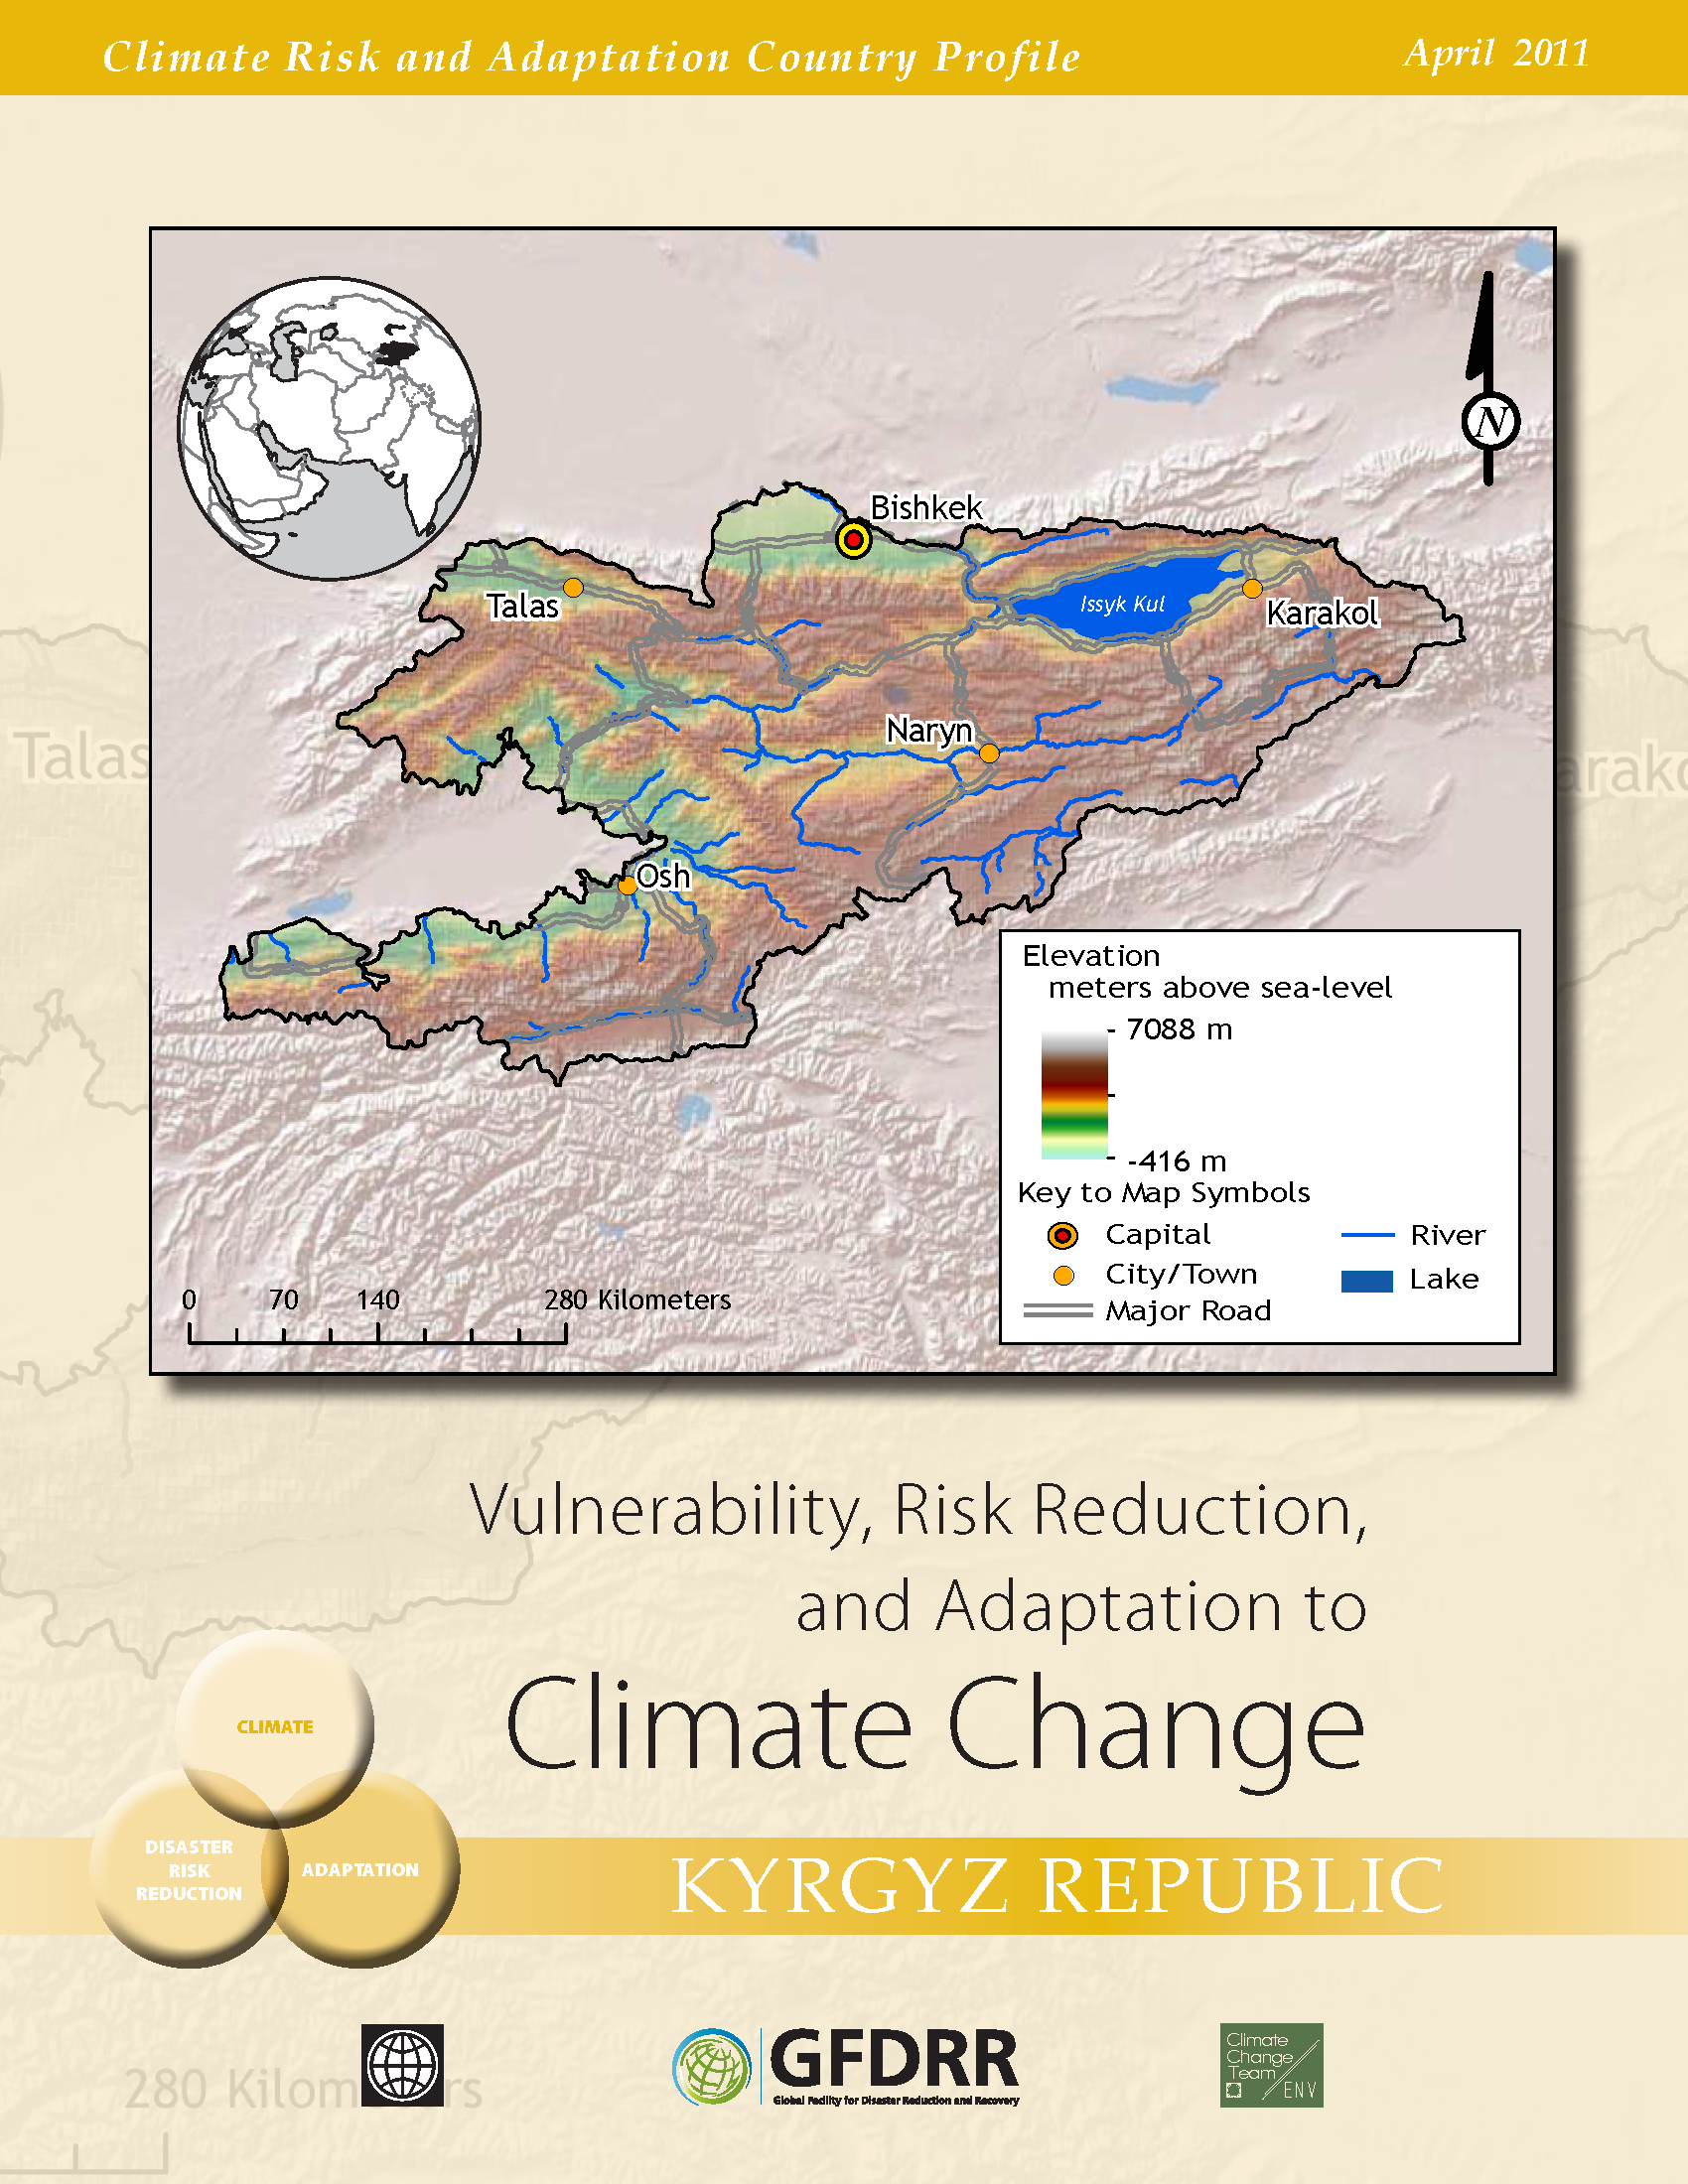 Climate Risk and Adaptation Country Profile: Kyrgyz Republic